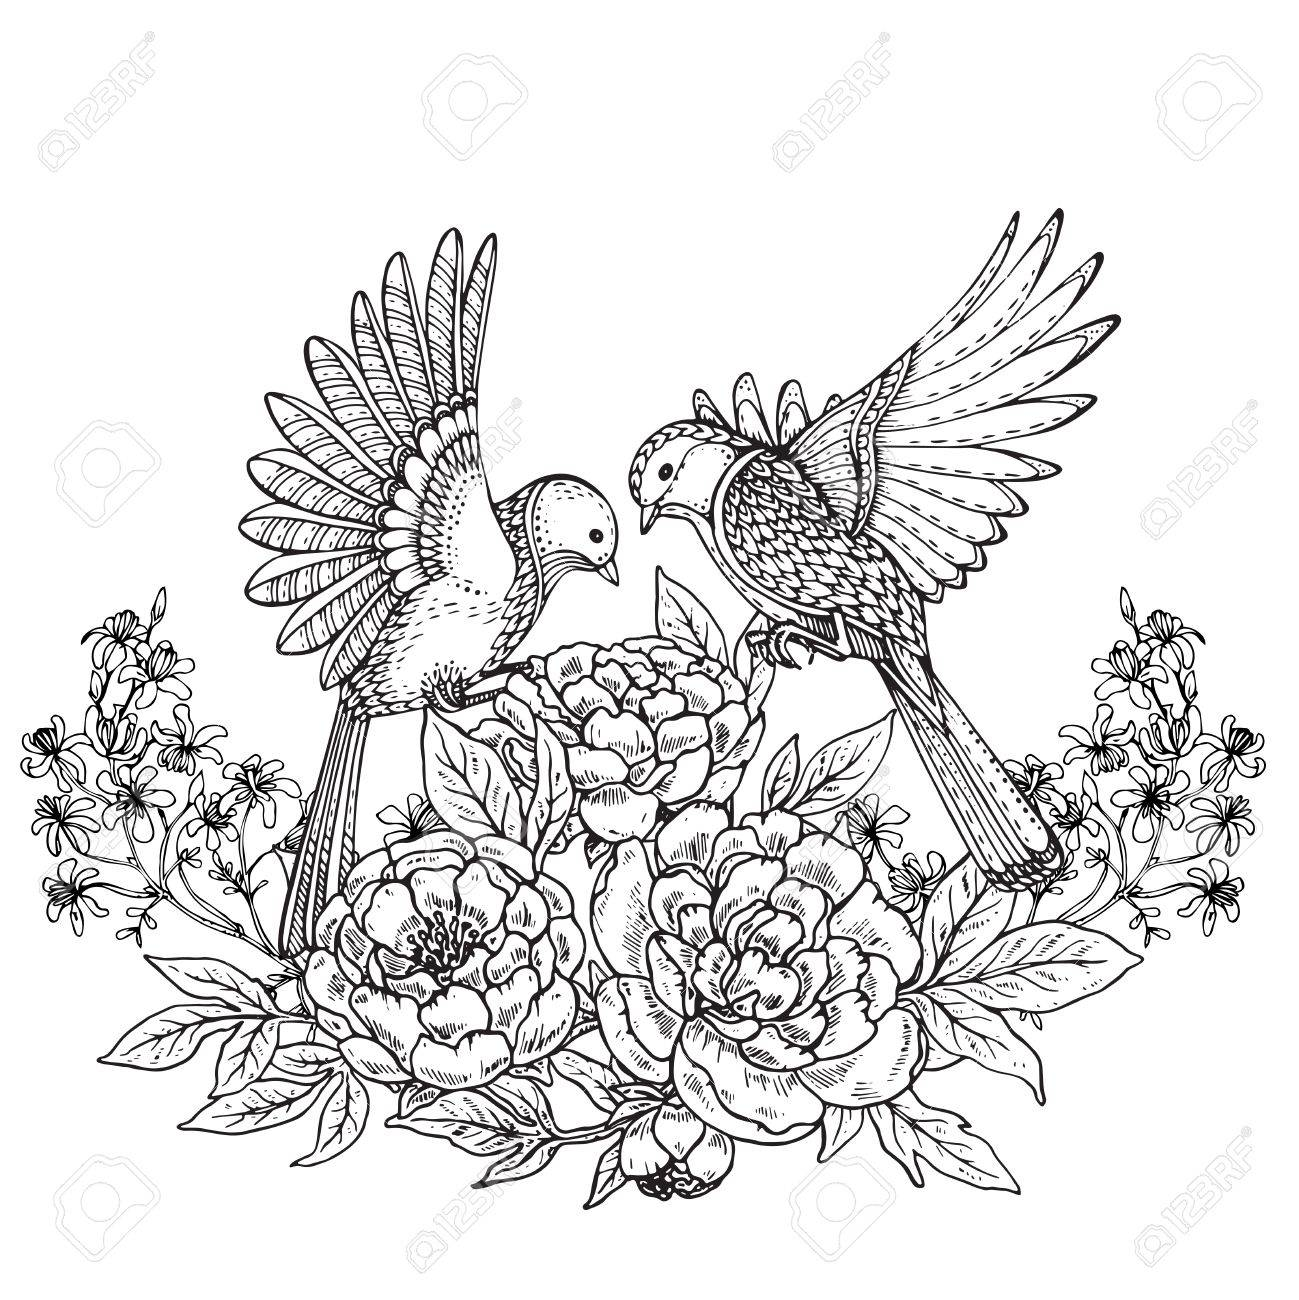 Vector Illustration Of Two Hand Drawn Graphic Birds And Peony